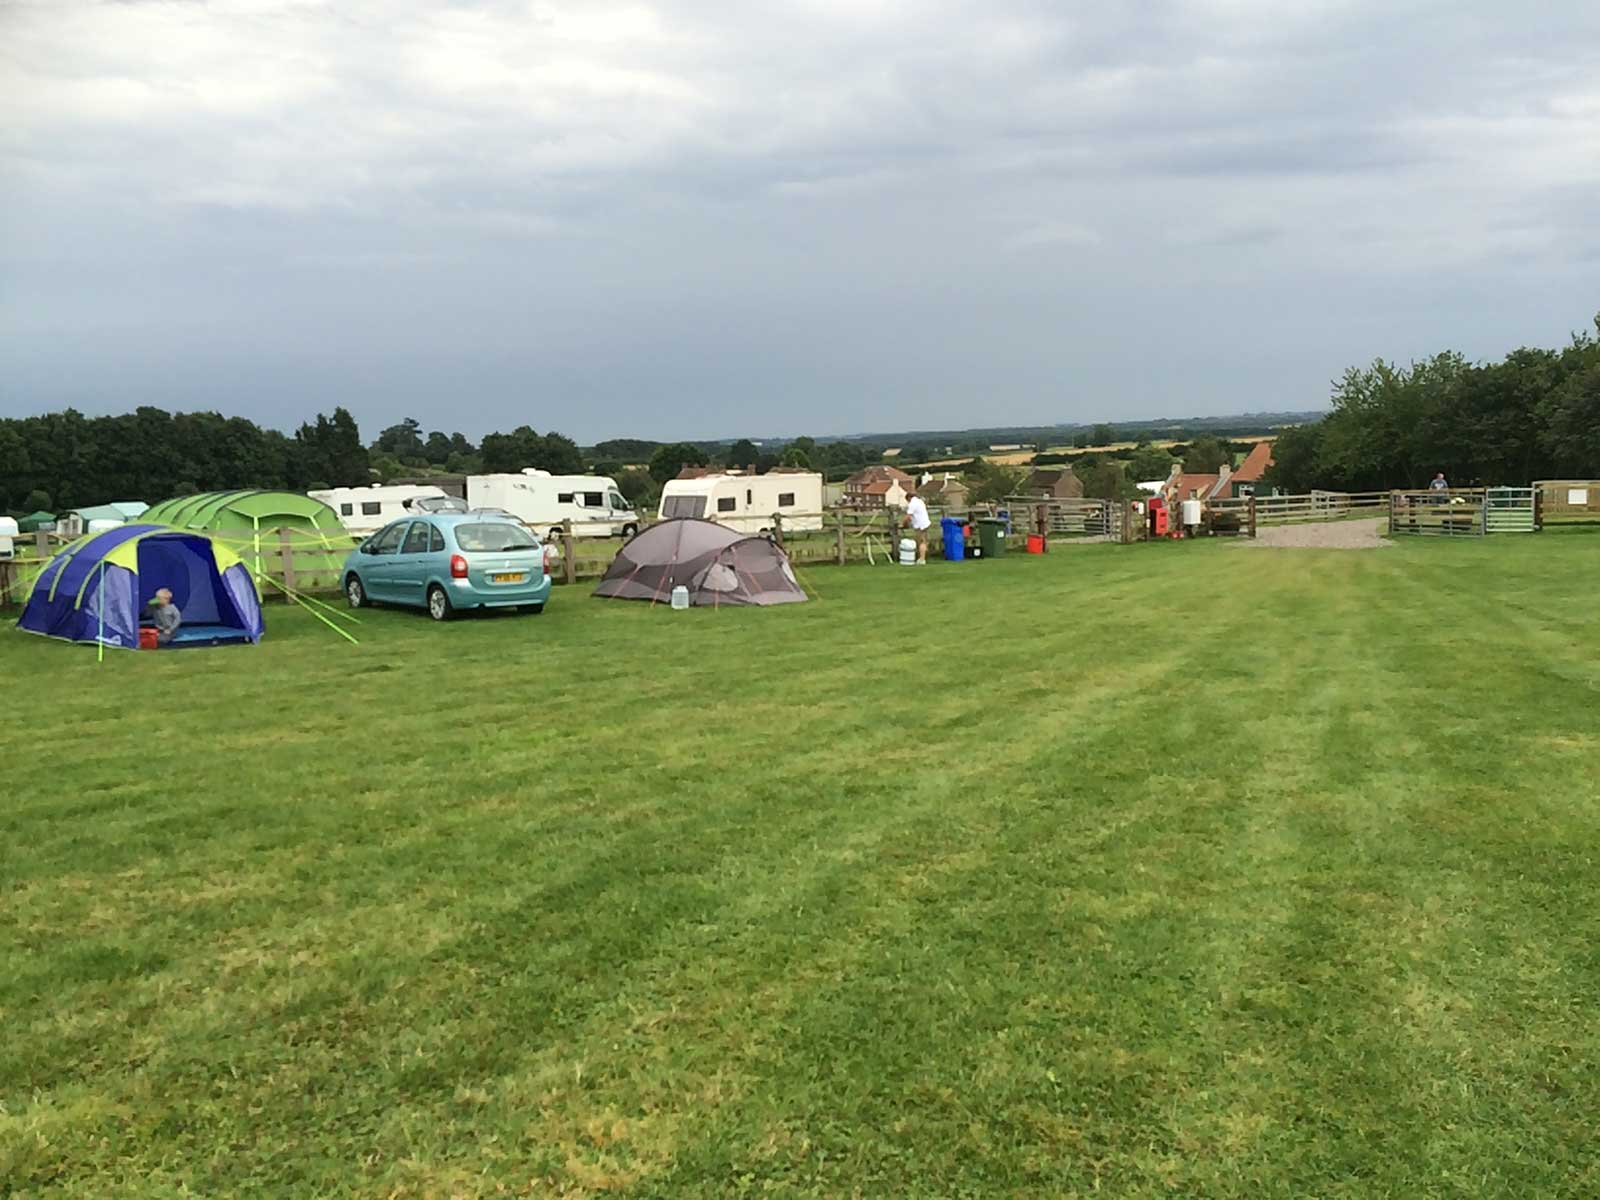 Camping and Caravanning in the rolling Yorkshire Wolds